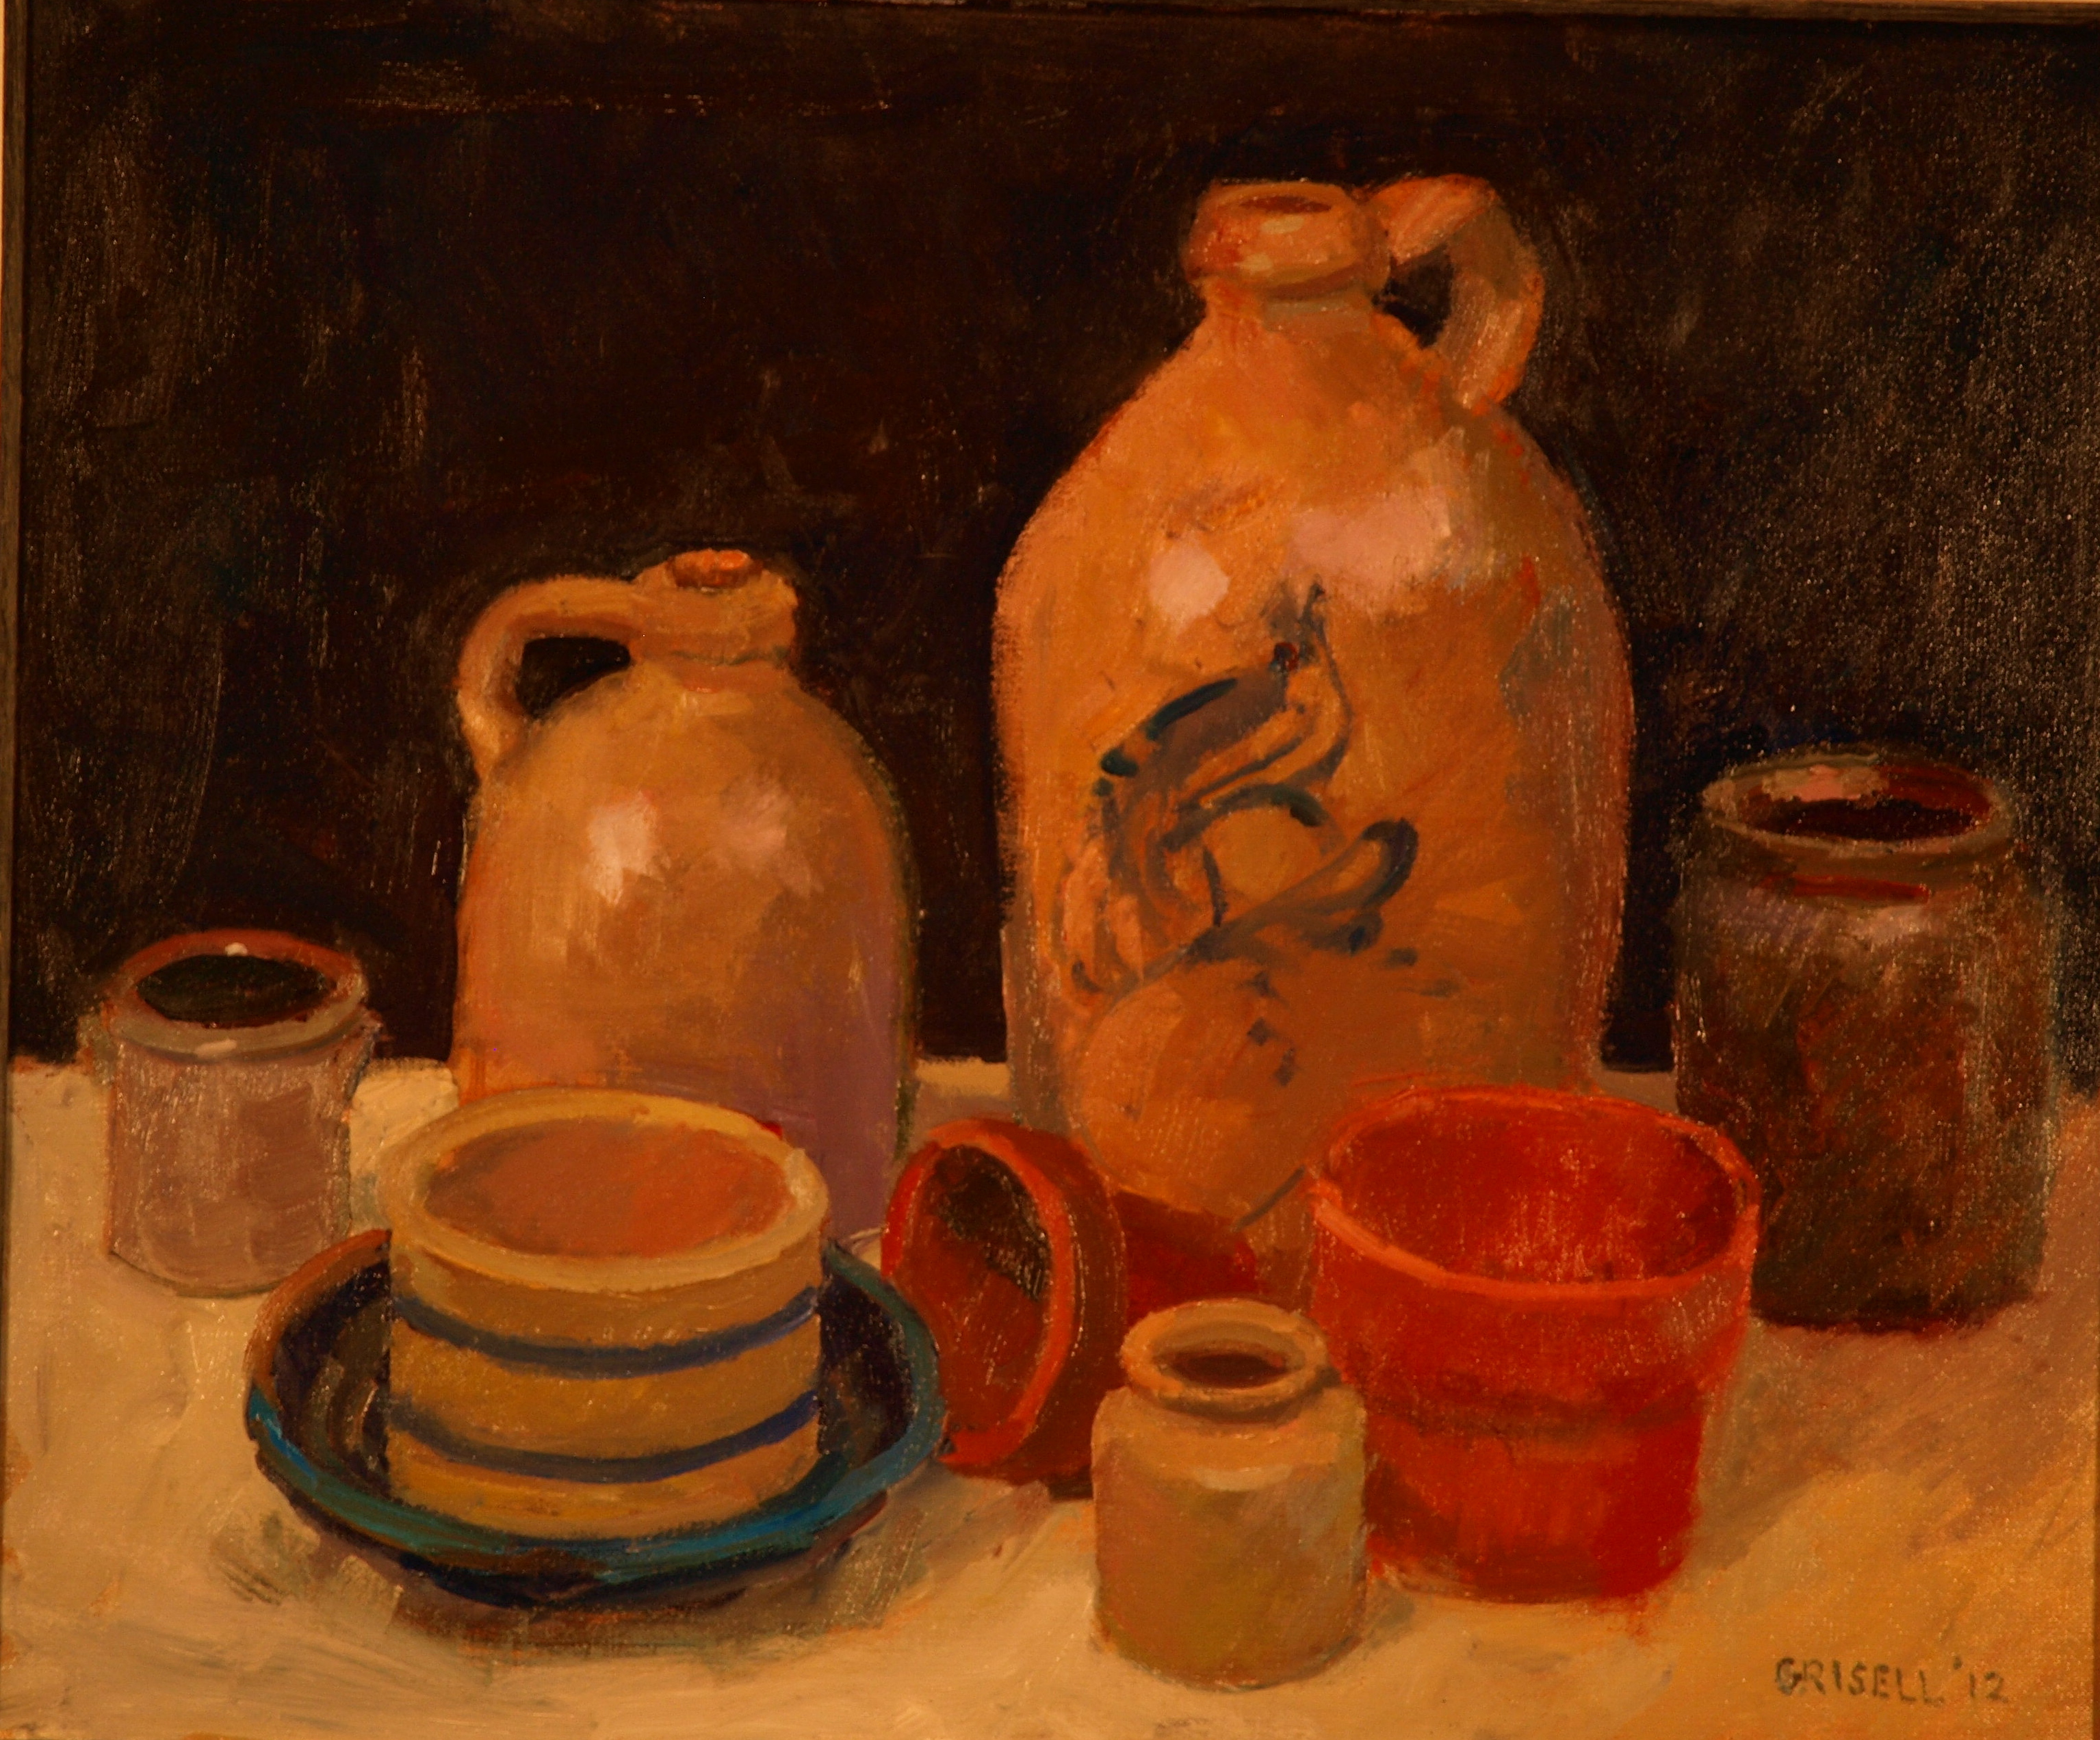 Pottery Still Life, Oil on Canvas, 20 x 24 Inches, by Susan Grisell, $650